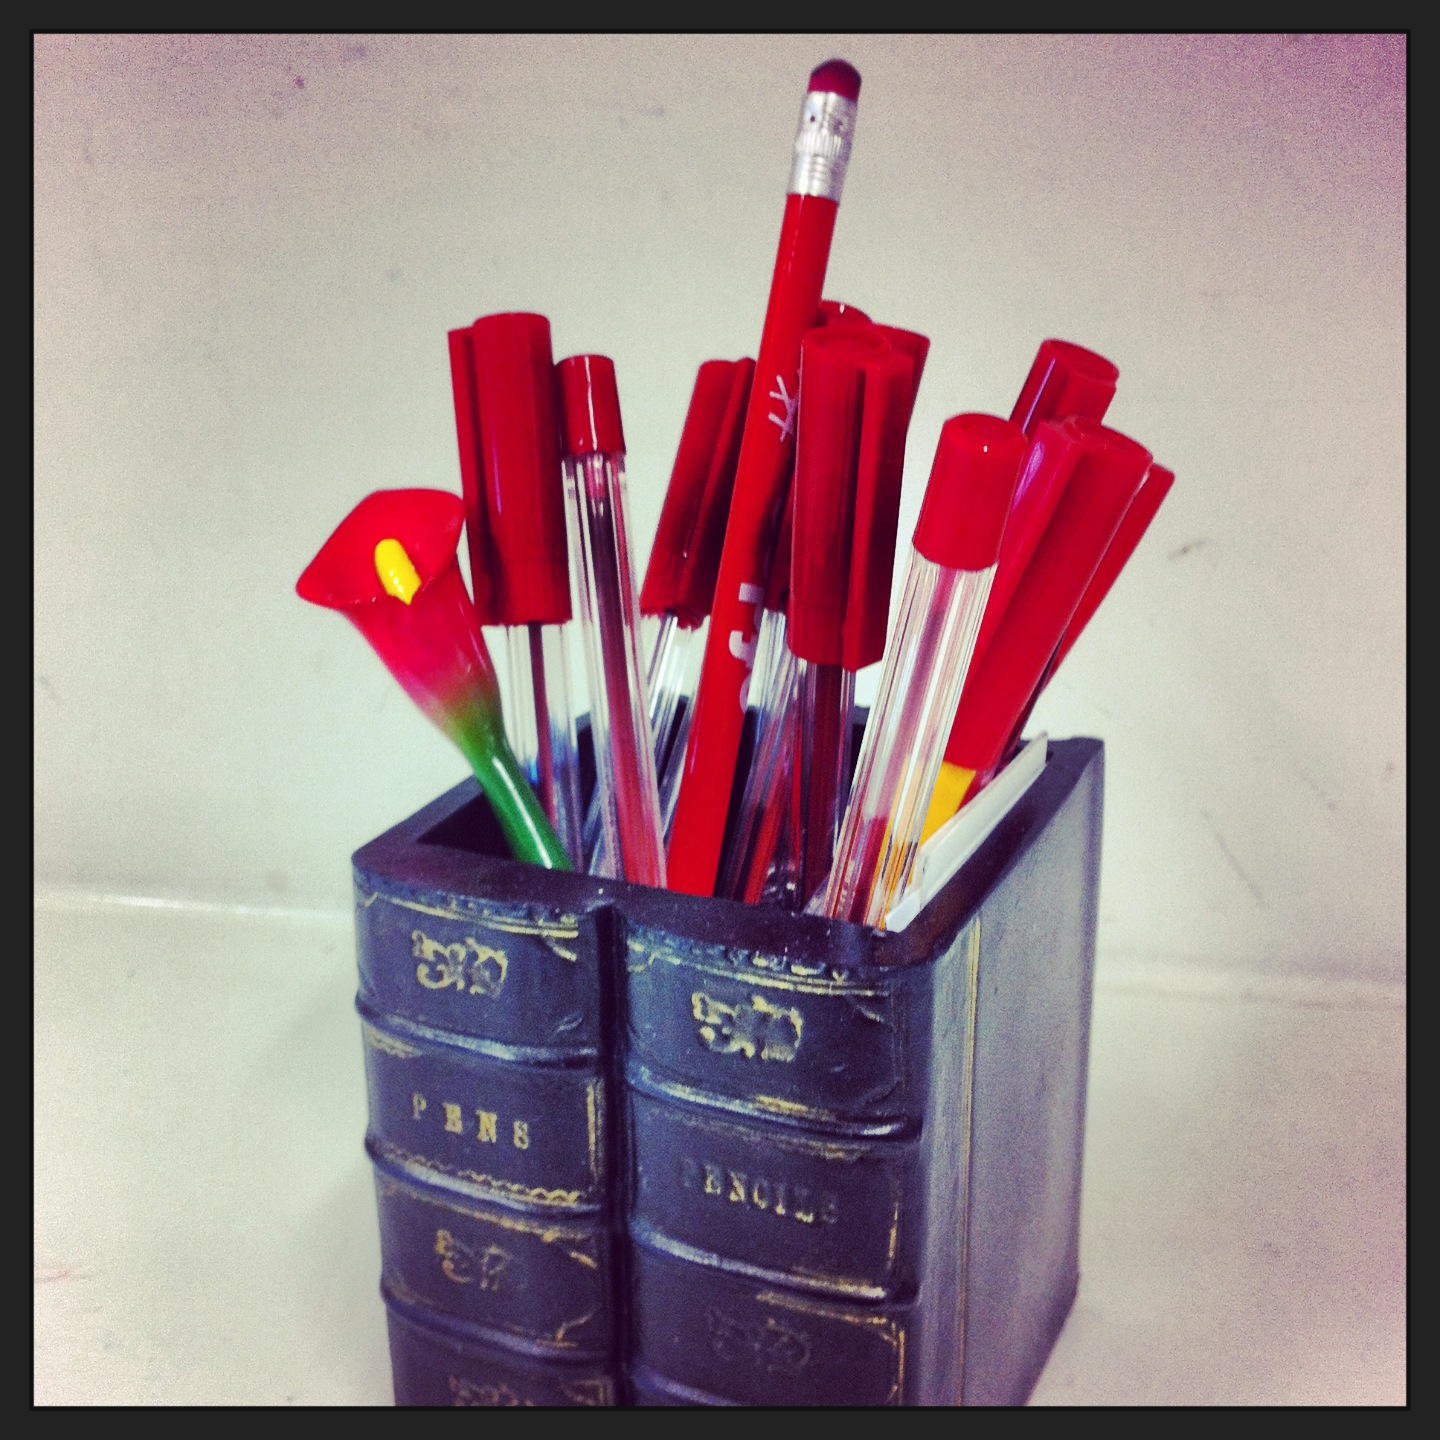 Tools of the trade - it's not all about the red pen